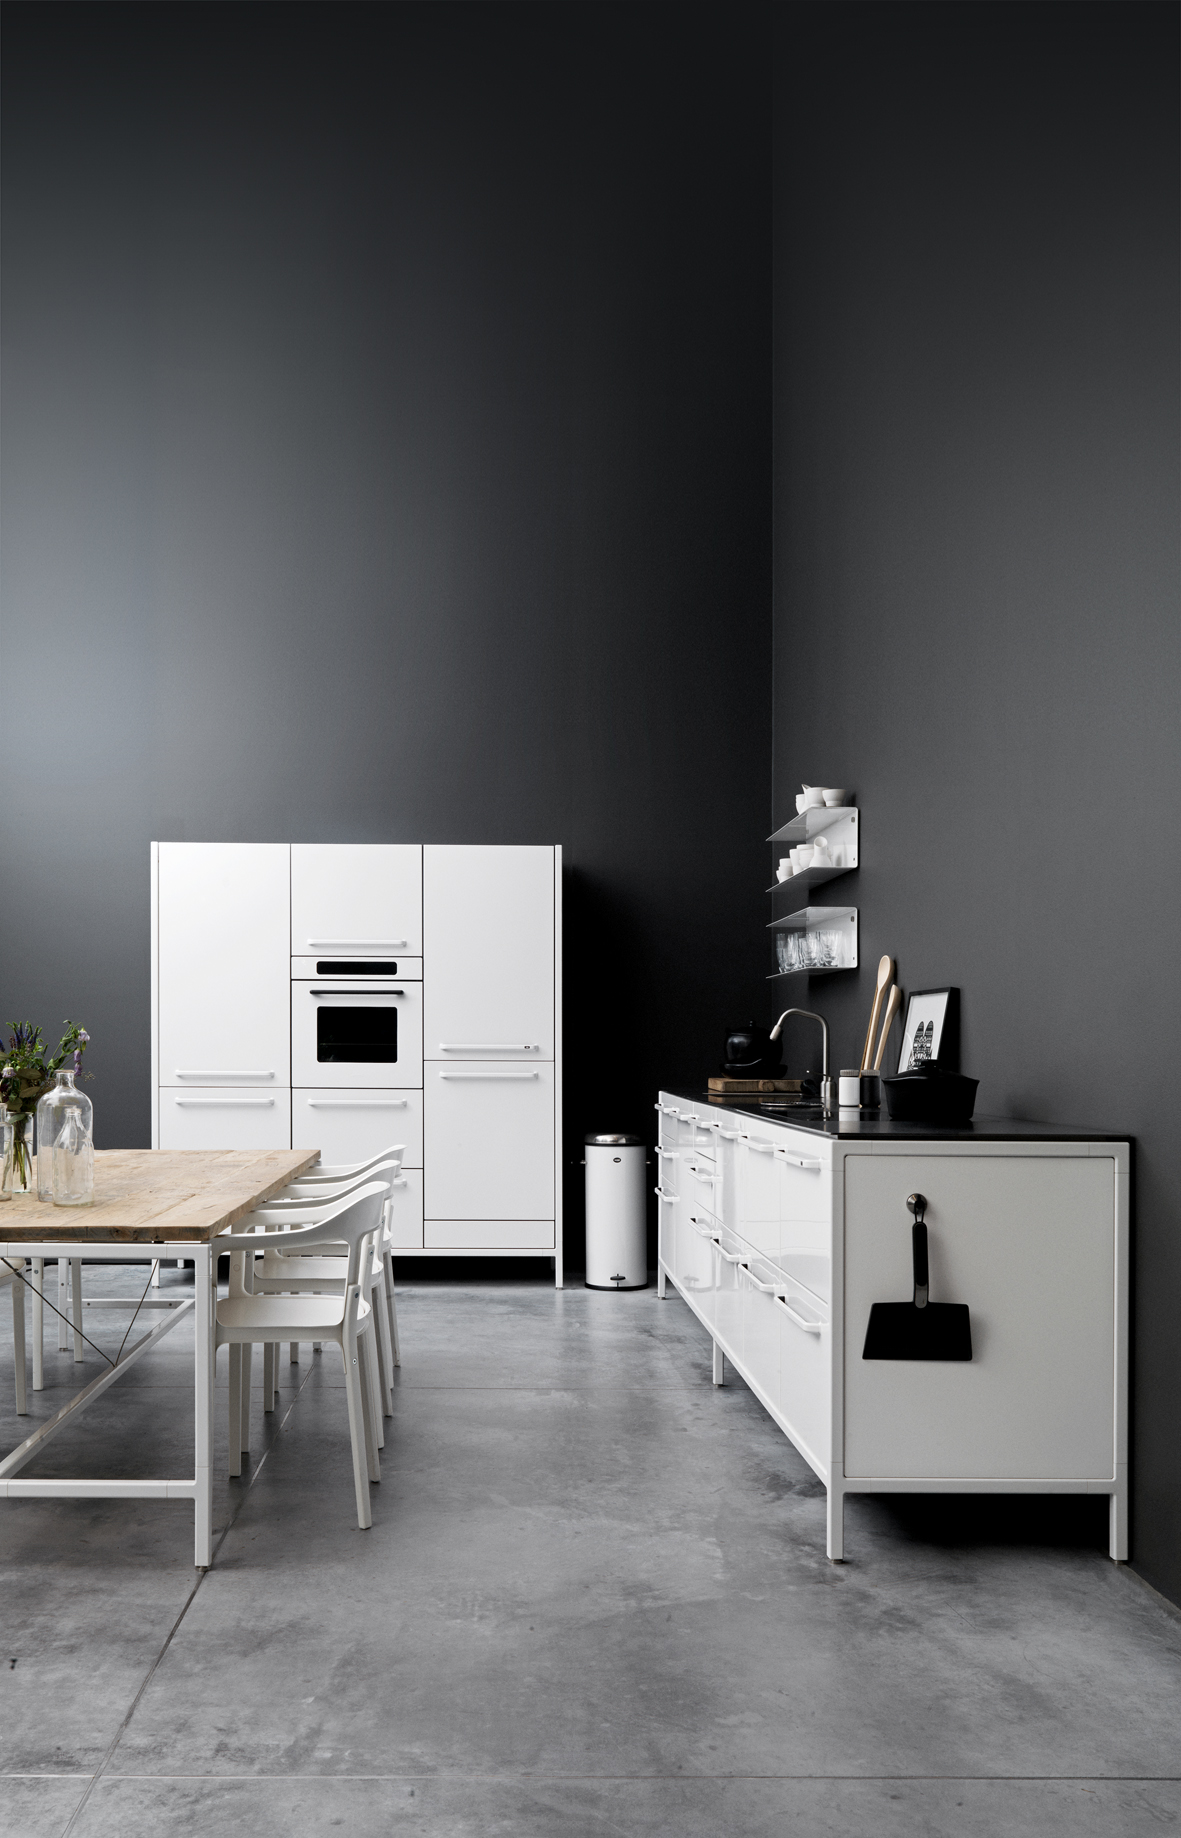 guide to polished concrete floors concrete kitchen floor Contrast light and dark on walls and polished concrete